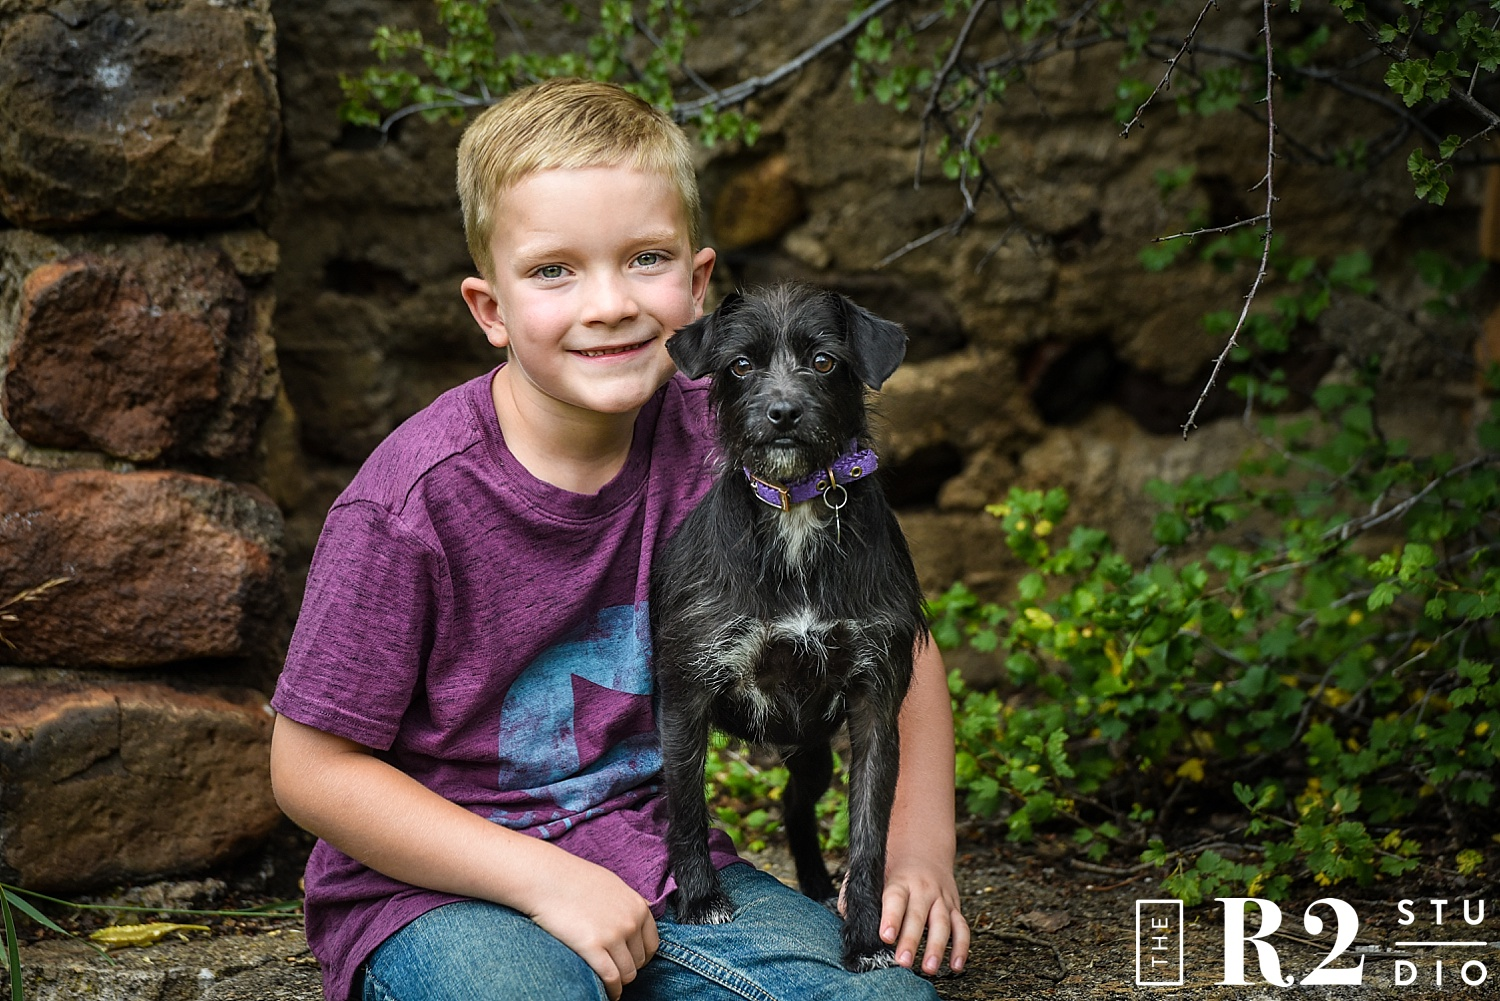 043reece17-flagstaff-family-photos-©2017ther2studio-